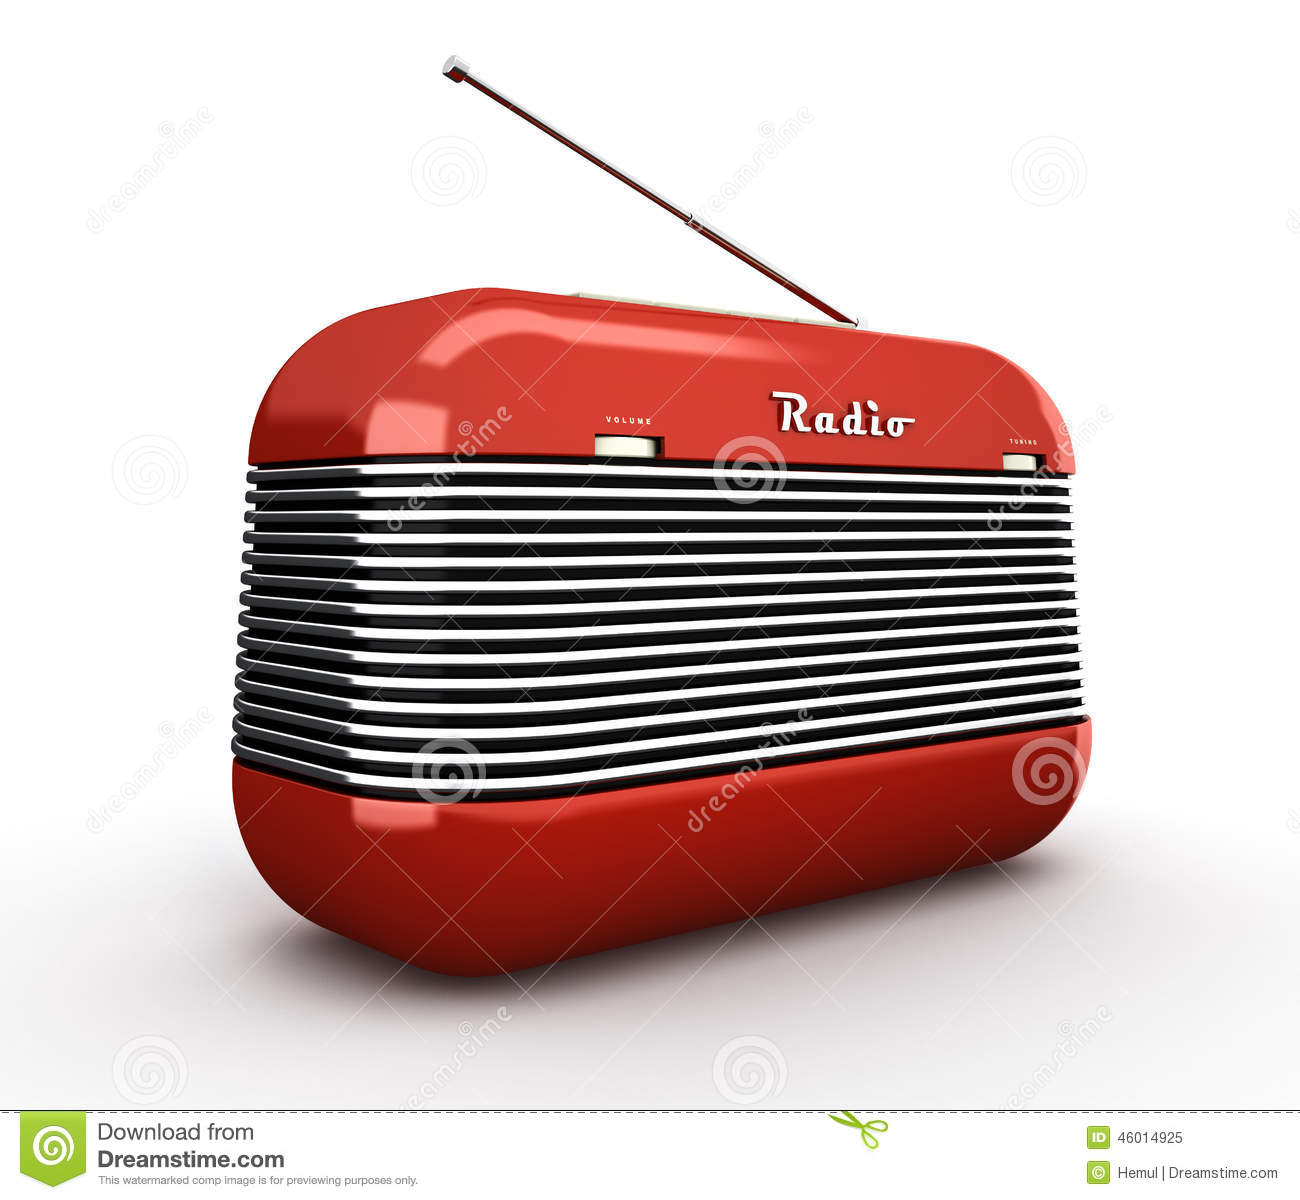 Old red vintage retro style radio receiver on white bac stock image image of radio blue 46014925 - Retro stuhle gunstig ...